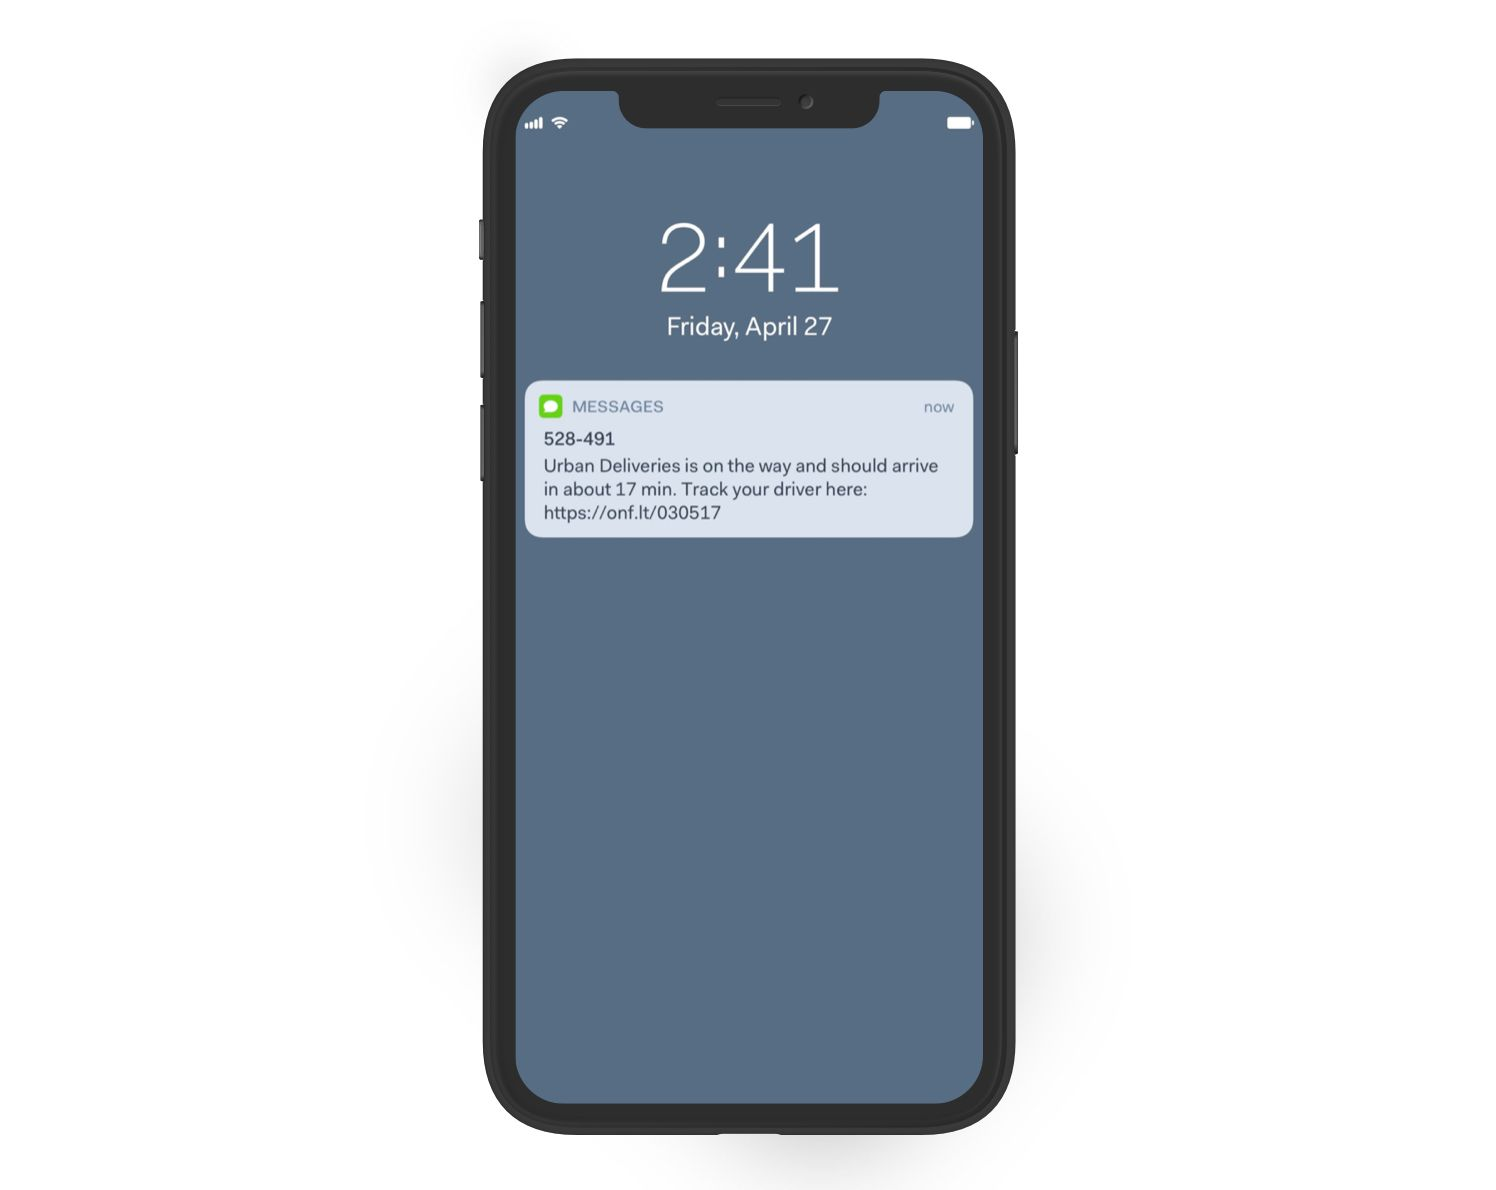 An example of an SMS notification your customer would receive when you use Onfleet.